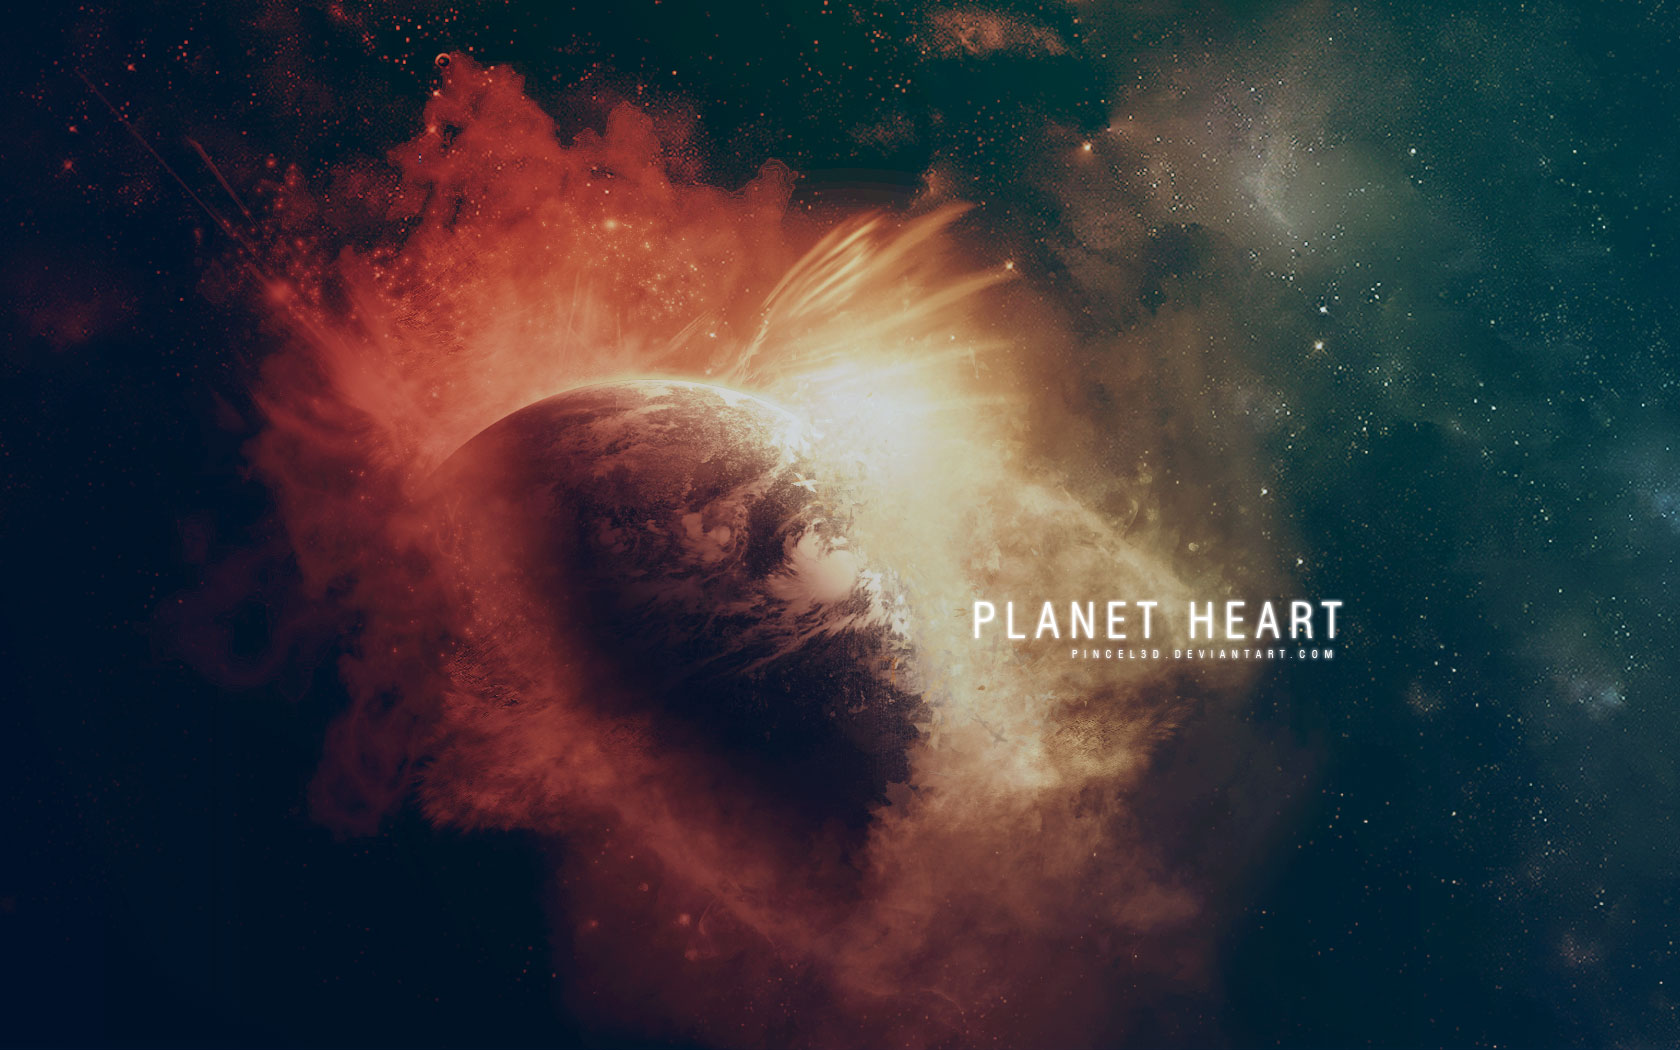 Planet Heart - New version